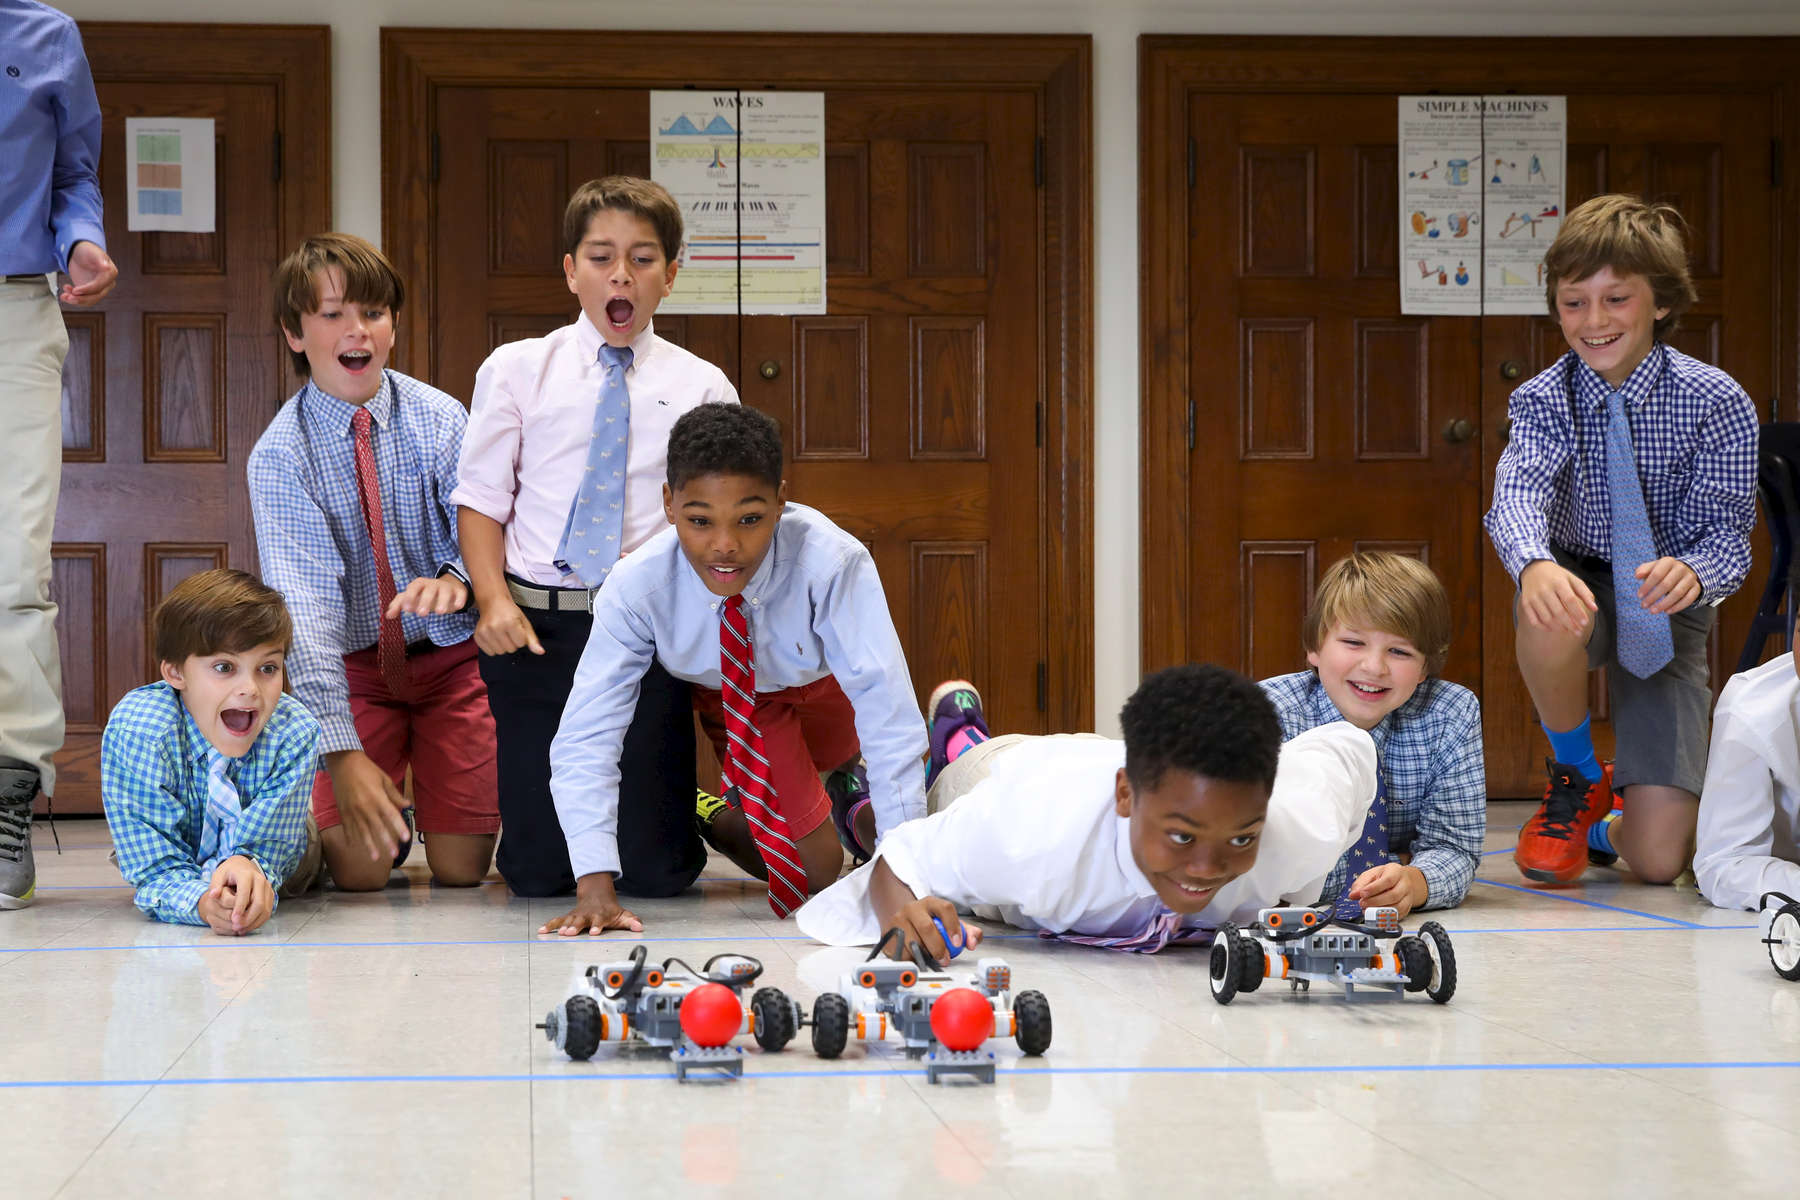 Student life at St. Albans School on 10/20/16 at 9:23:51 AM. © Paul Morse Photography 2016